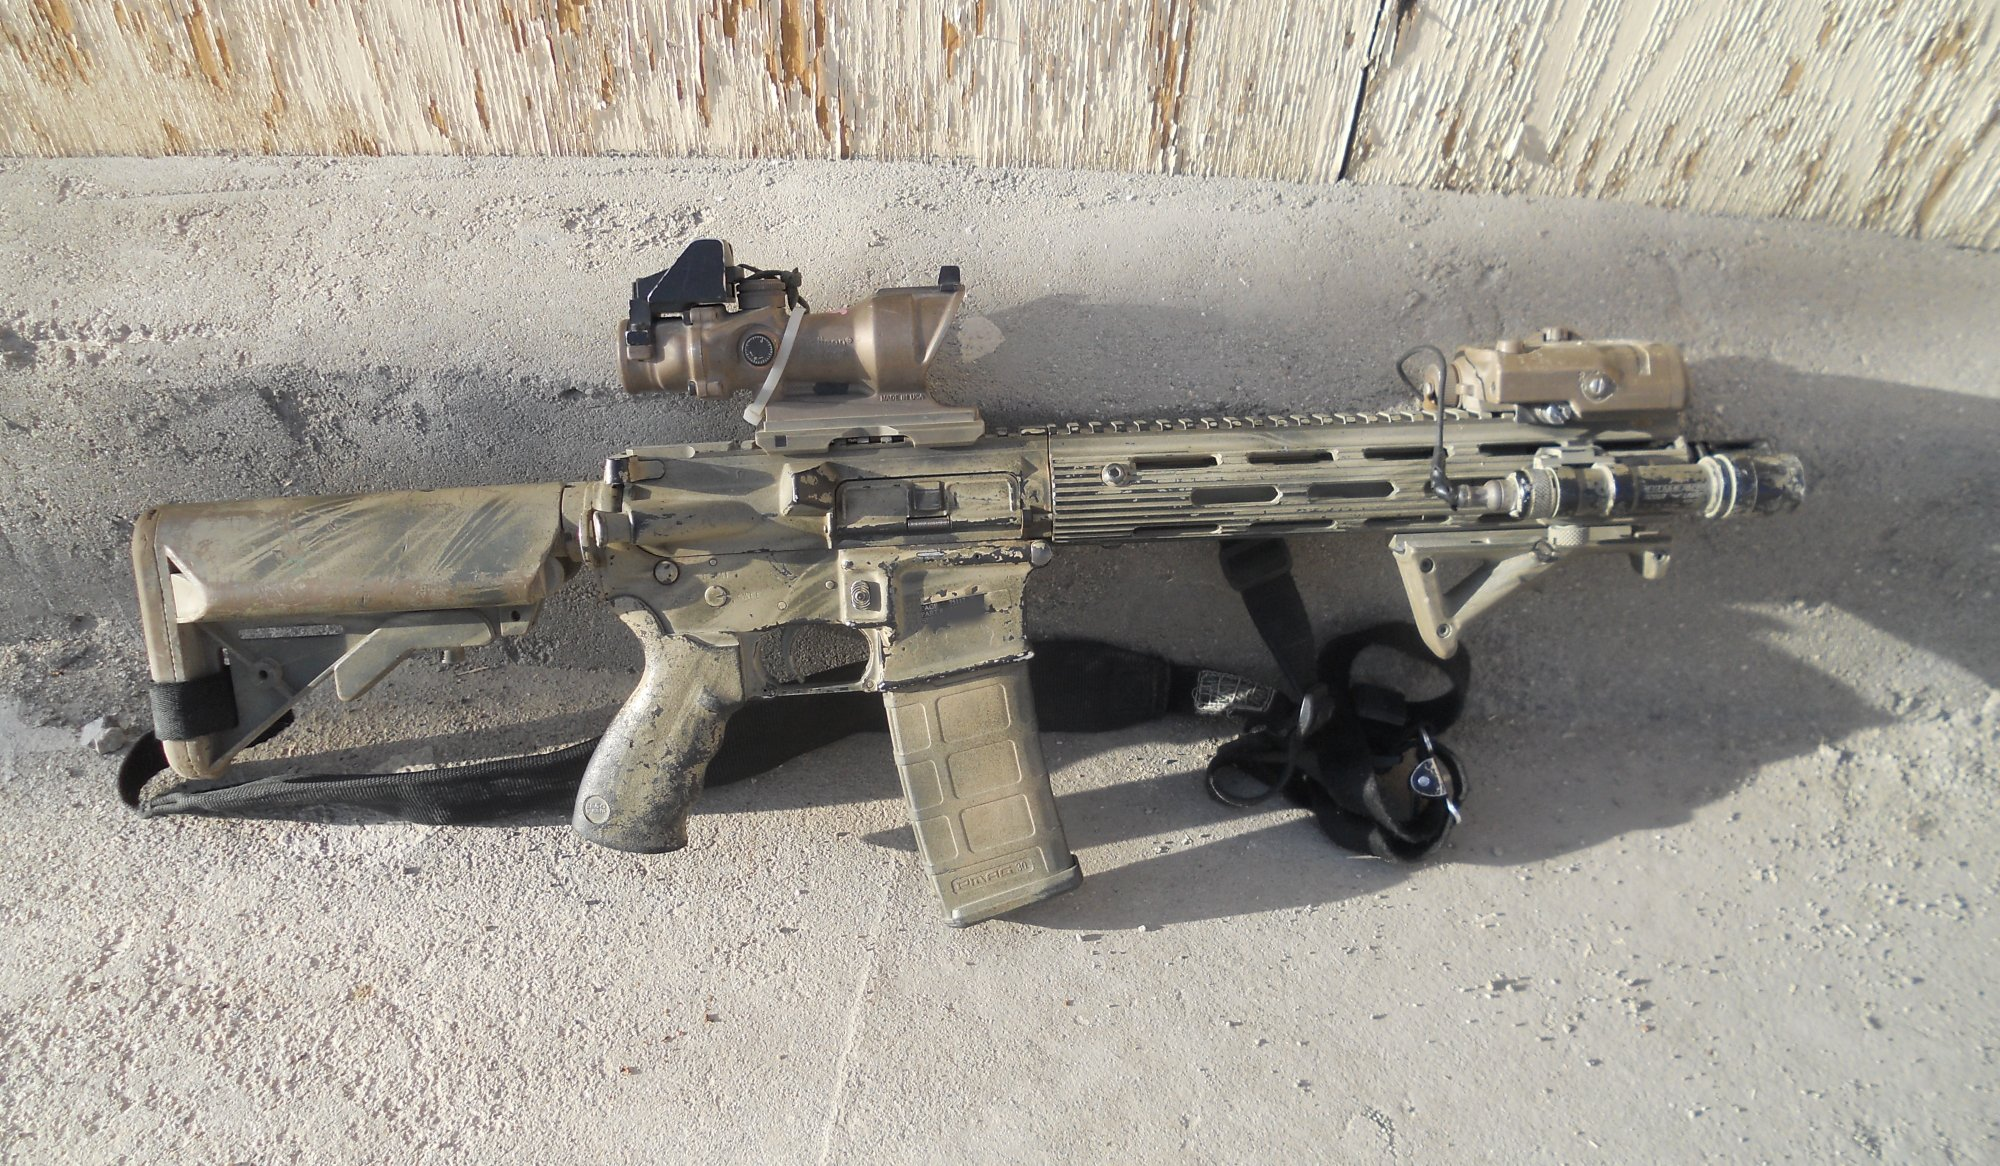 Tactical AR-15/M4/M4A1 Carbine Aftermarket Accessories for Military Combat Applications: The Competition-to-Combat Crossover, Part 1